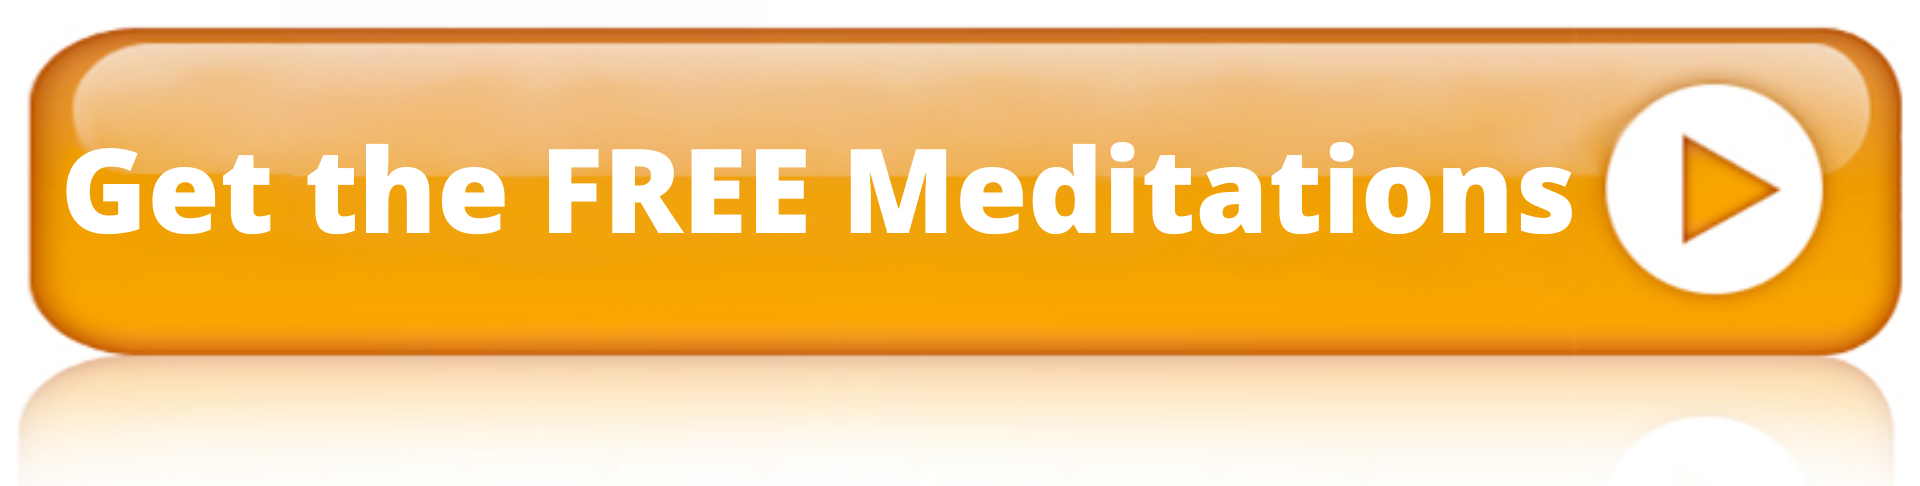 Get the Free meditations